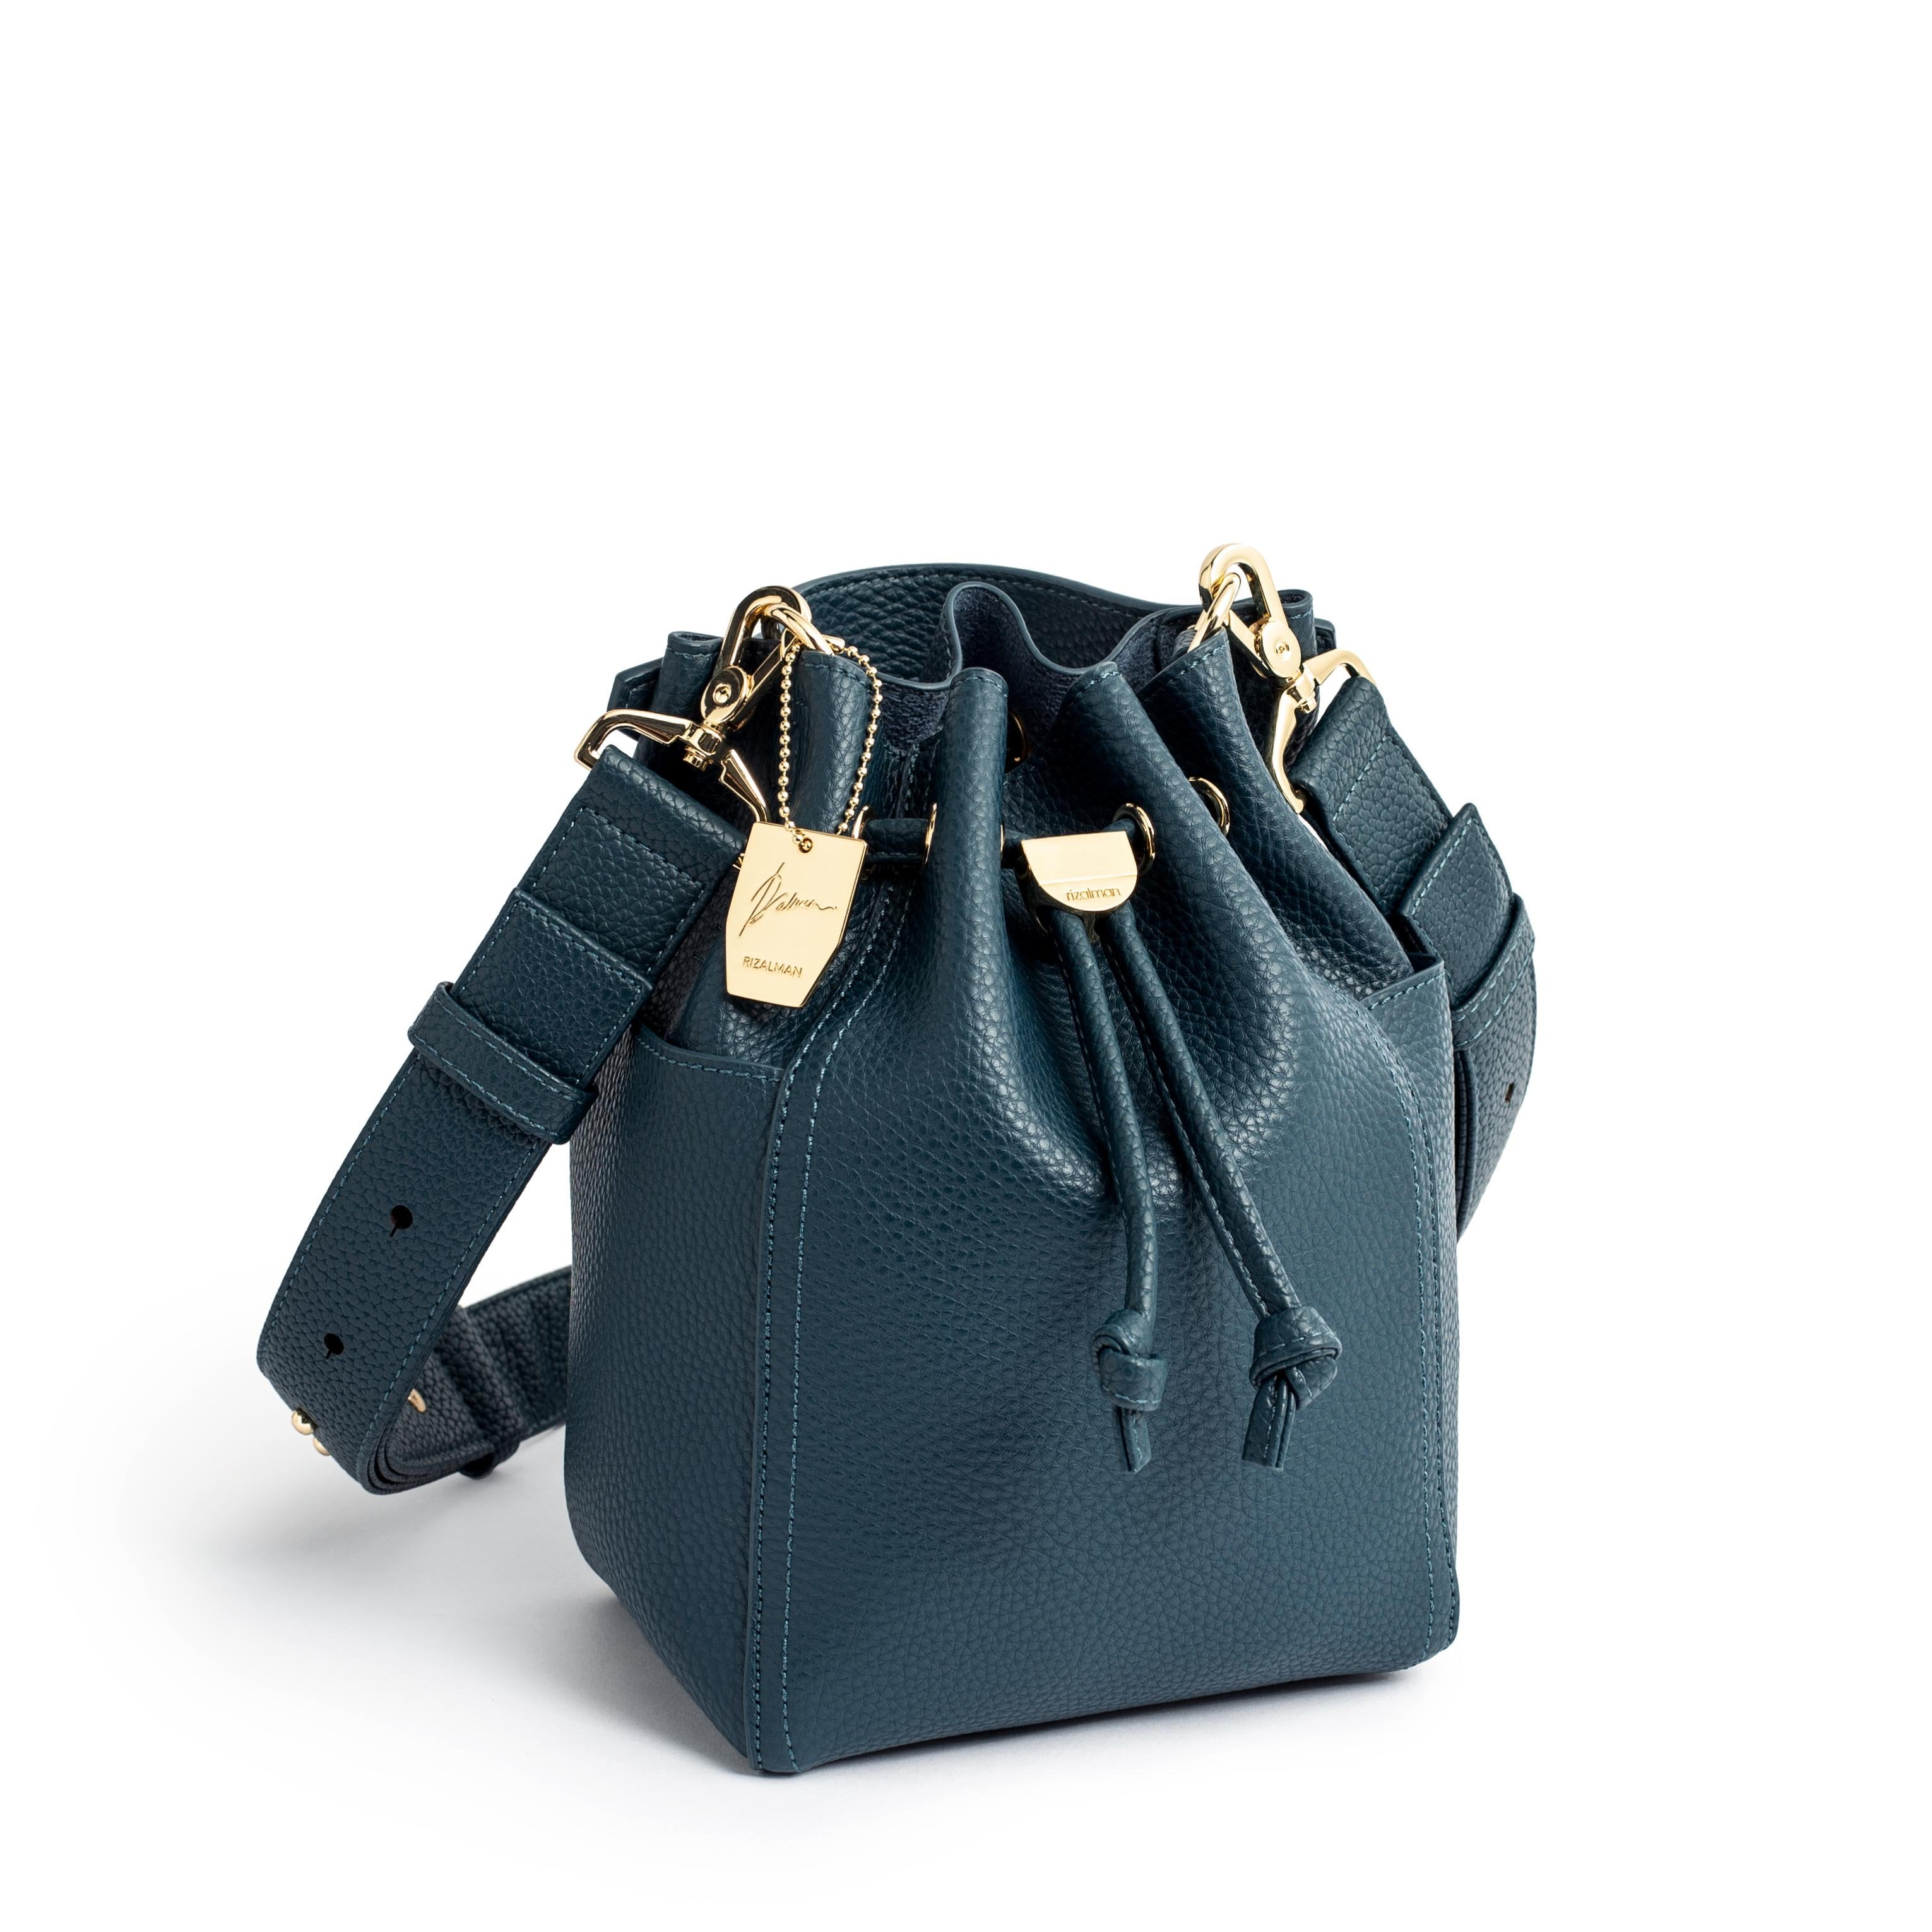 RIBUCKET MINI - NAVY